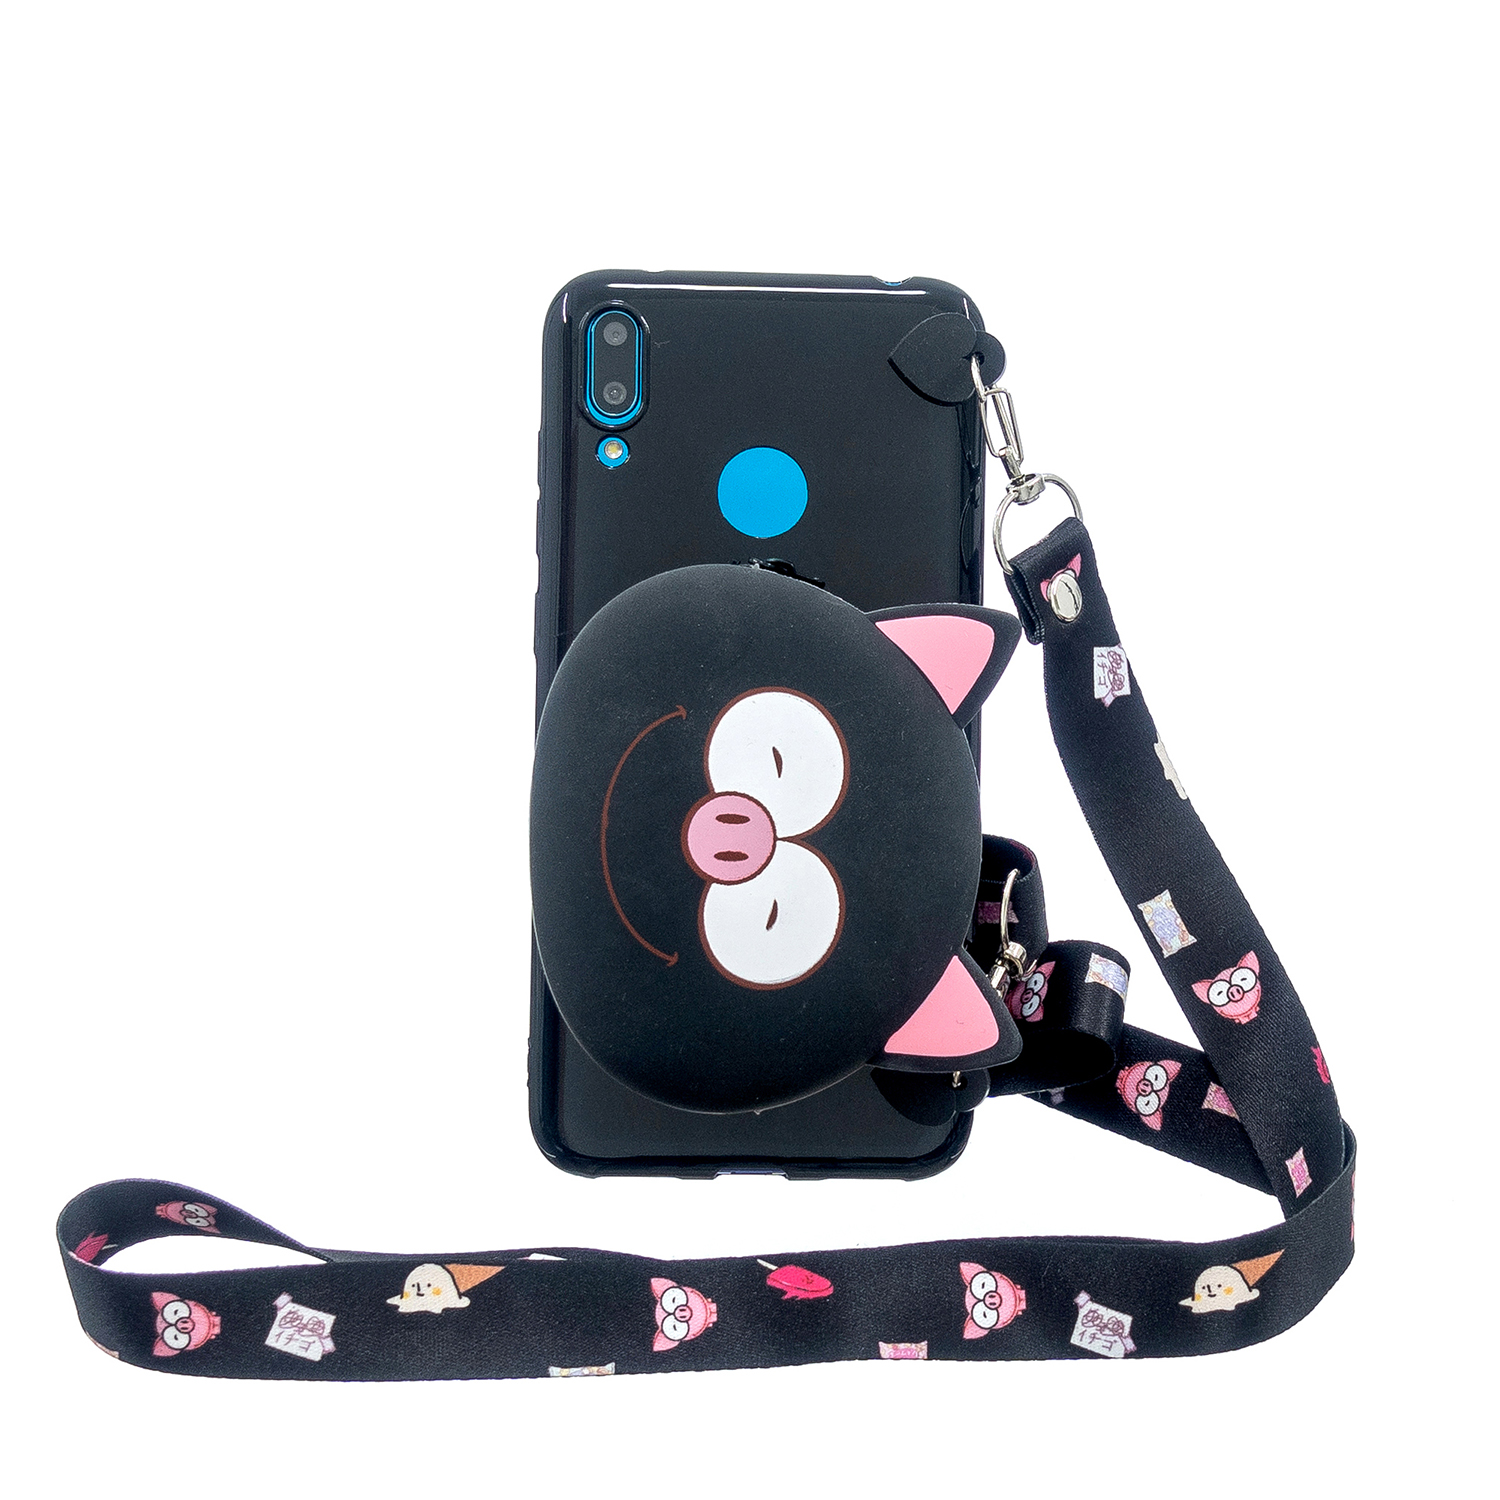 For HUAWEI Y6/Y7 Prime 2019 Cellphone Case Mobile Phone Shell Shockproof TPU Cover with Cartoon Cat Pig Panda Coin Purse Lovely Shoulder Starp  Black